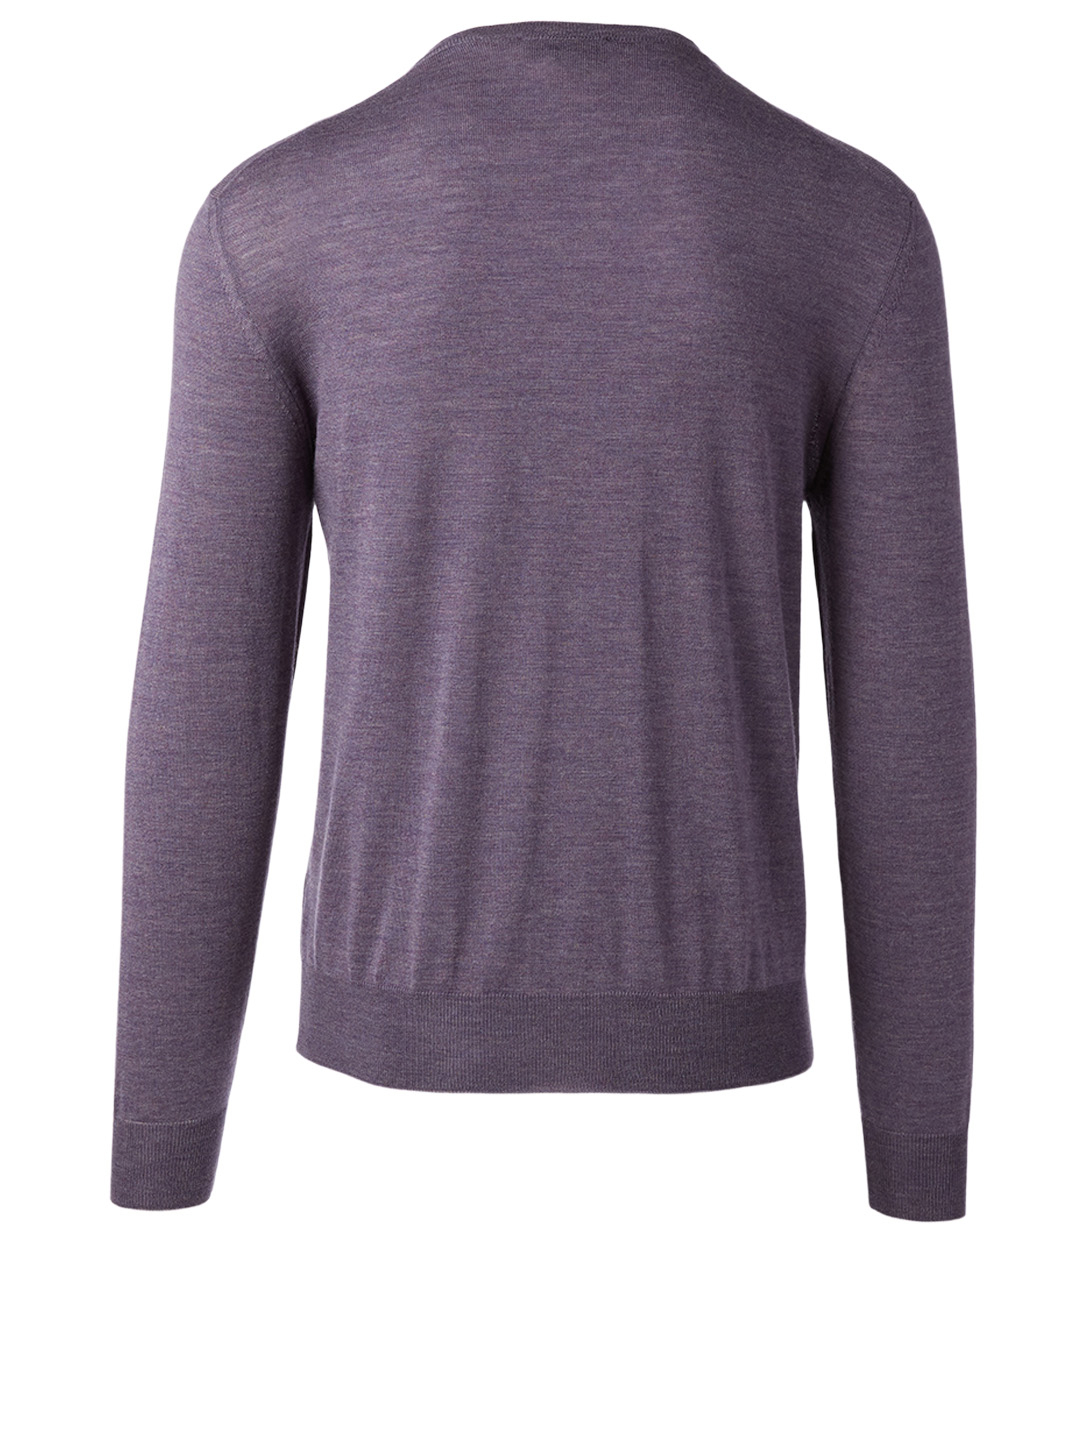 CANALI Wool V-Neck Sweater Men's Purple